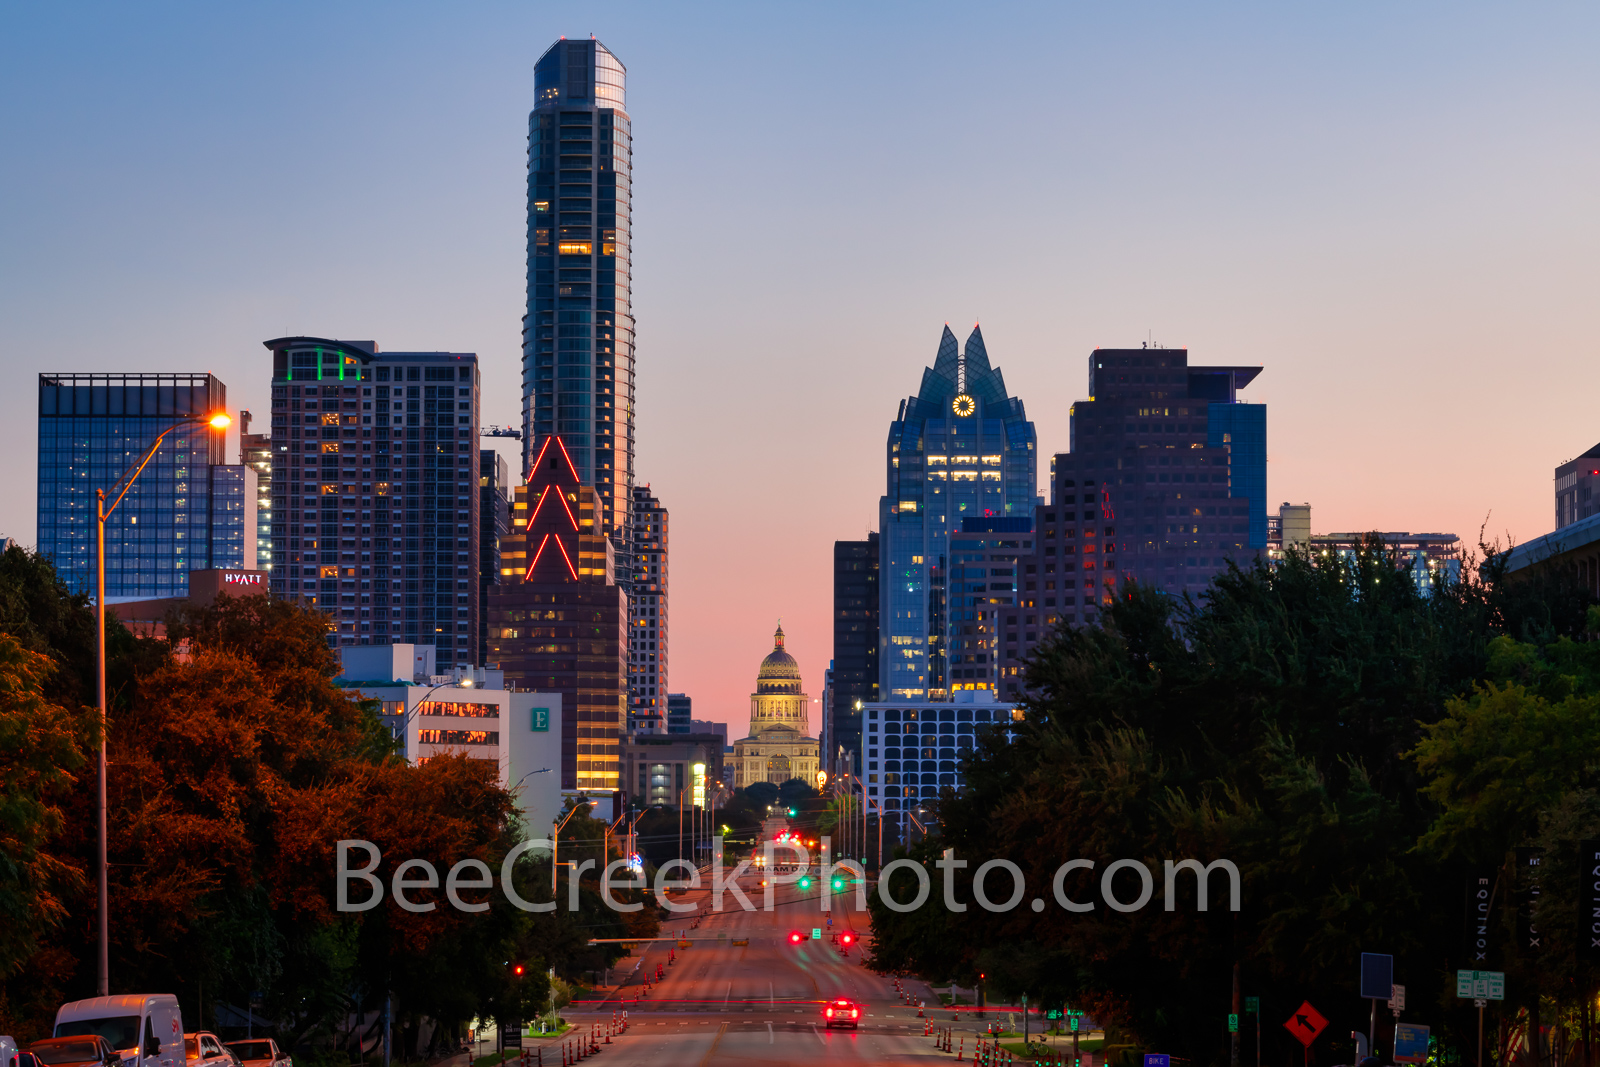 austin, texas, austin skyline, sunrise, austin sunrise, austin downtown, austin texas, downtown austin, austin texas, soco, austin soco, south congress, texas capitol, congress, frost tower, austonian